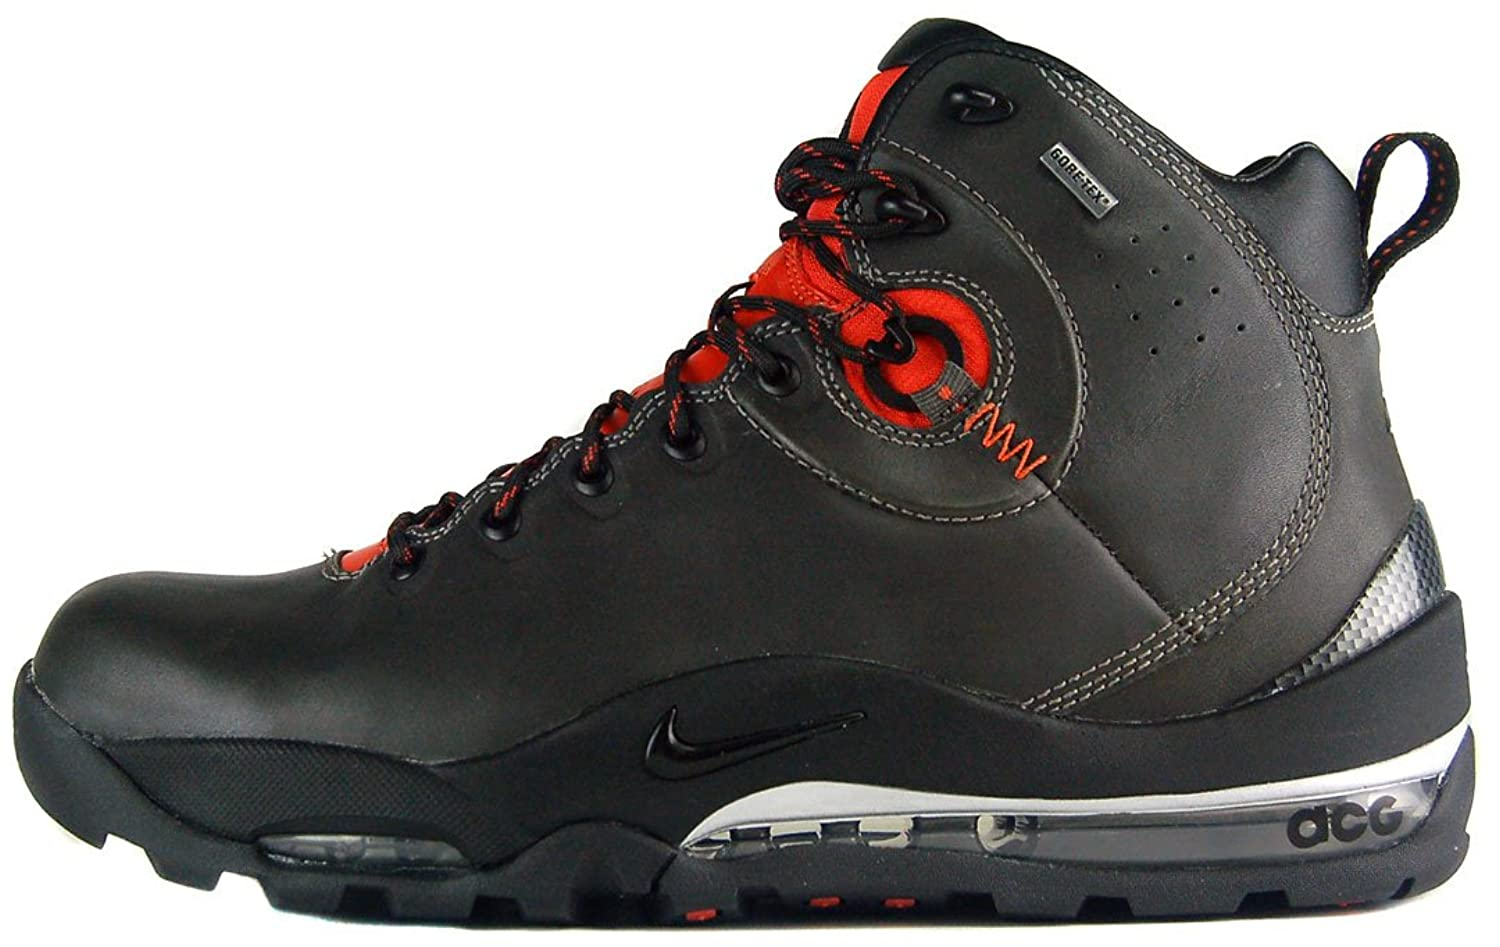 Images for Nike Premium ACG Mens Boot [472497 060] Midnight FogBlack Dark Copper Mens Shoes 472497 060 8.5